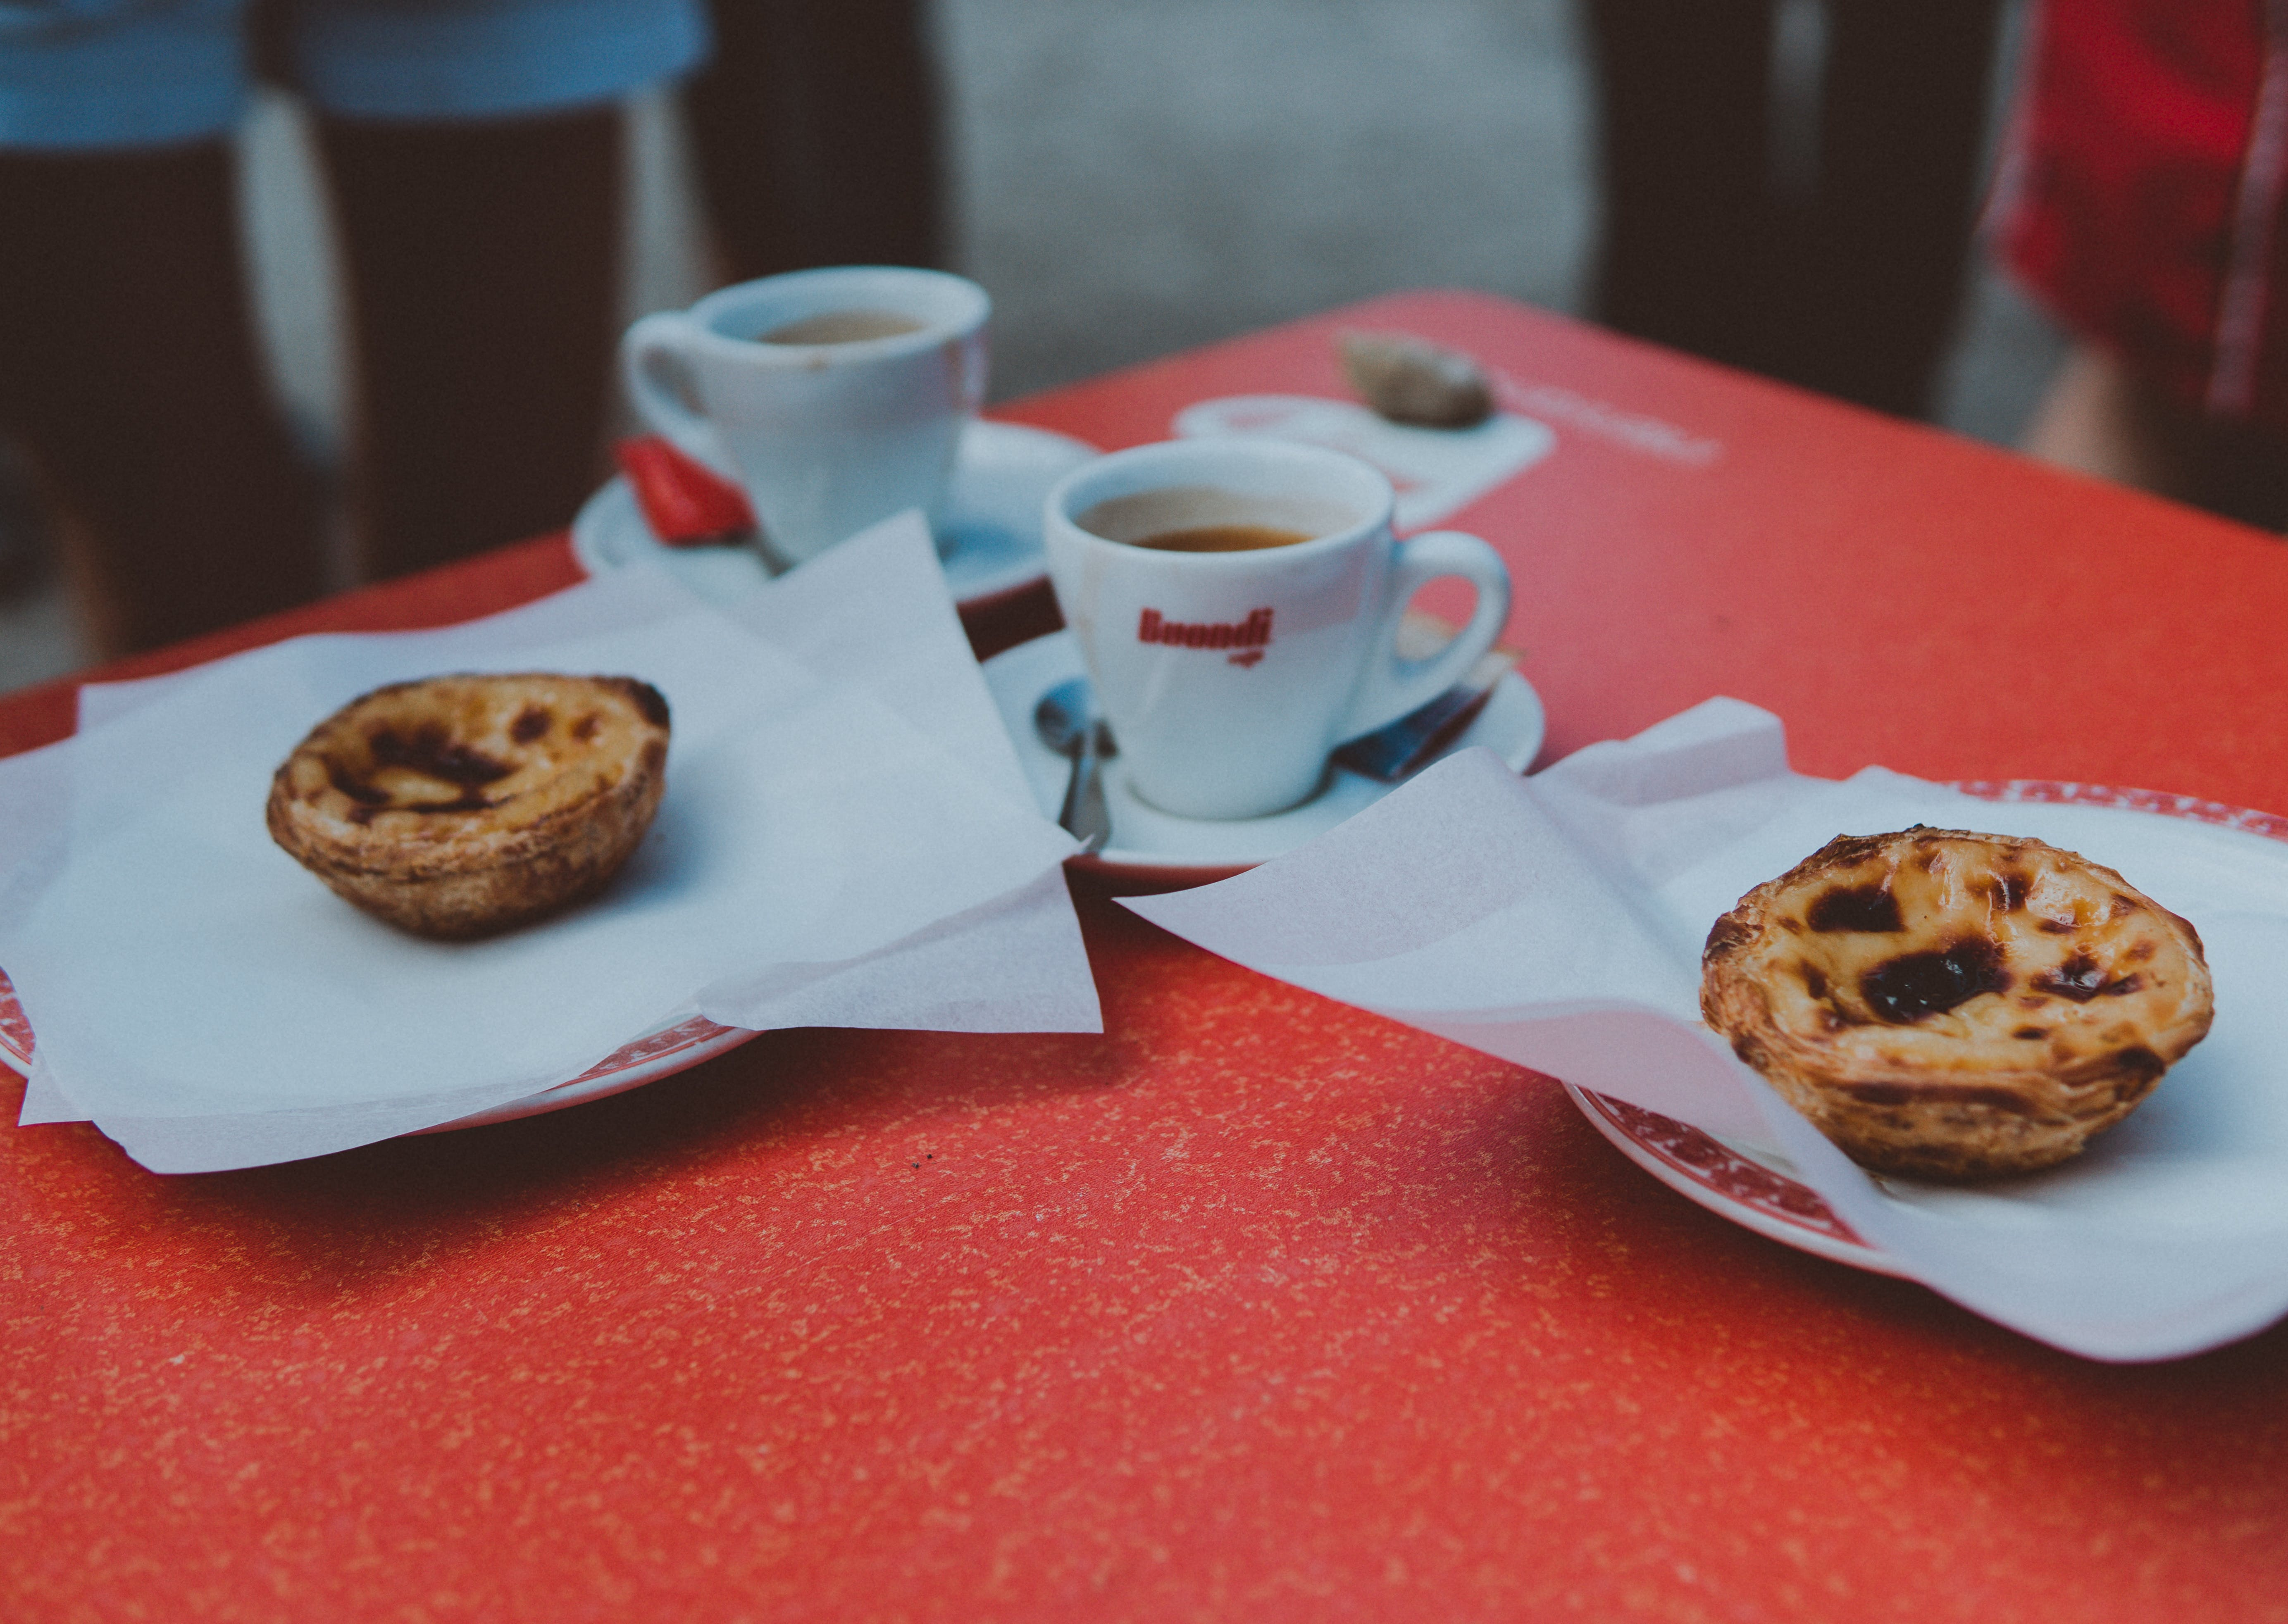 Two Baked Pastries in Plate on Table